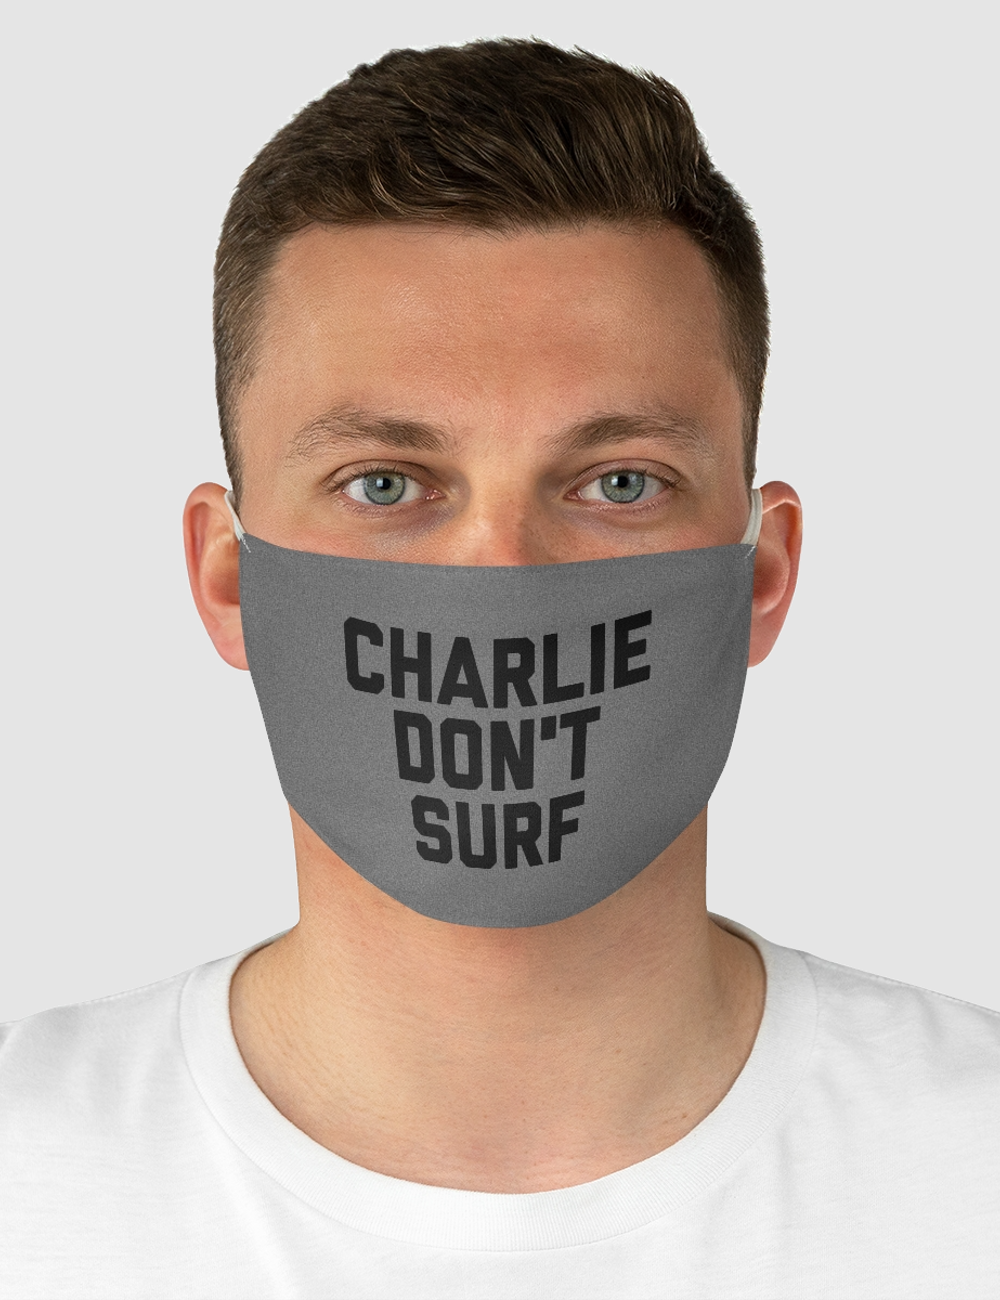 Charlie Don't Surf | Fabric Face Mask